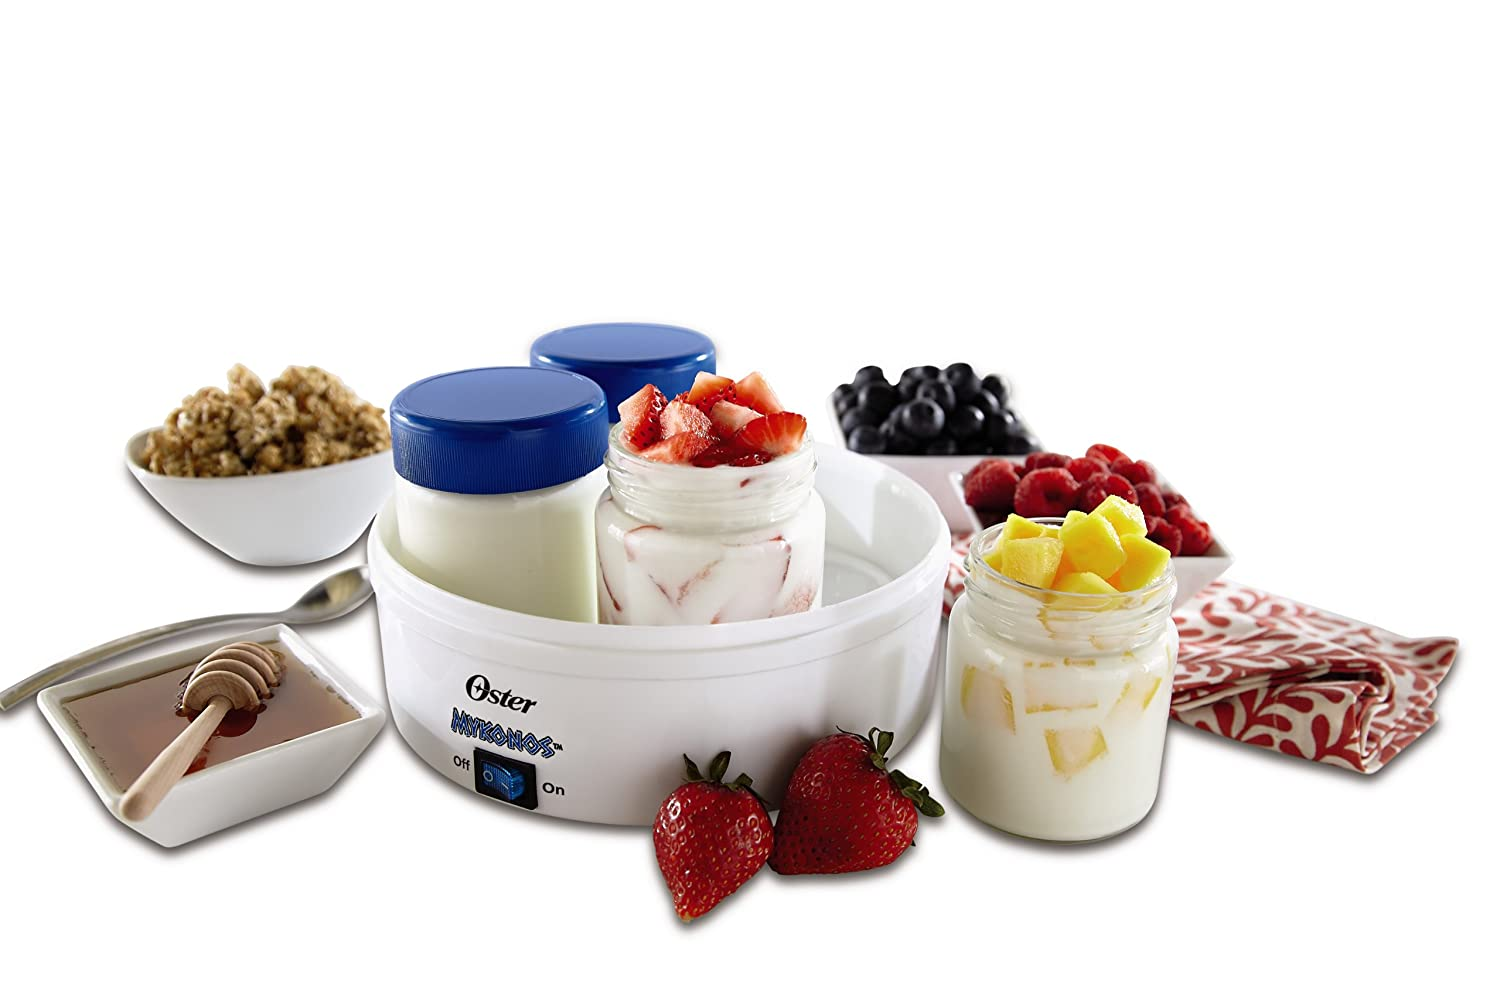 Oster CKSTYM1001 Mykonos Greek Manual Yogurt Maker, 1-Quart